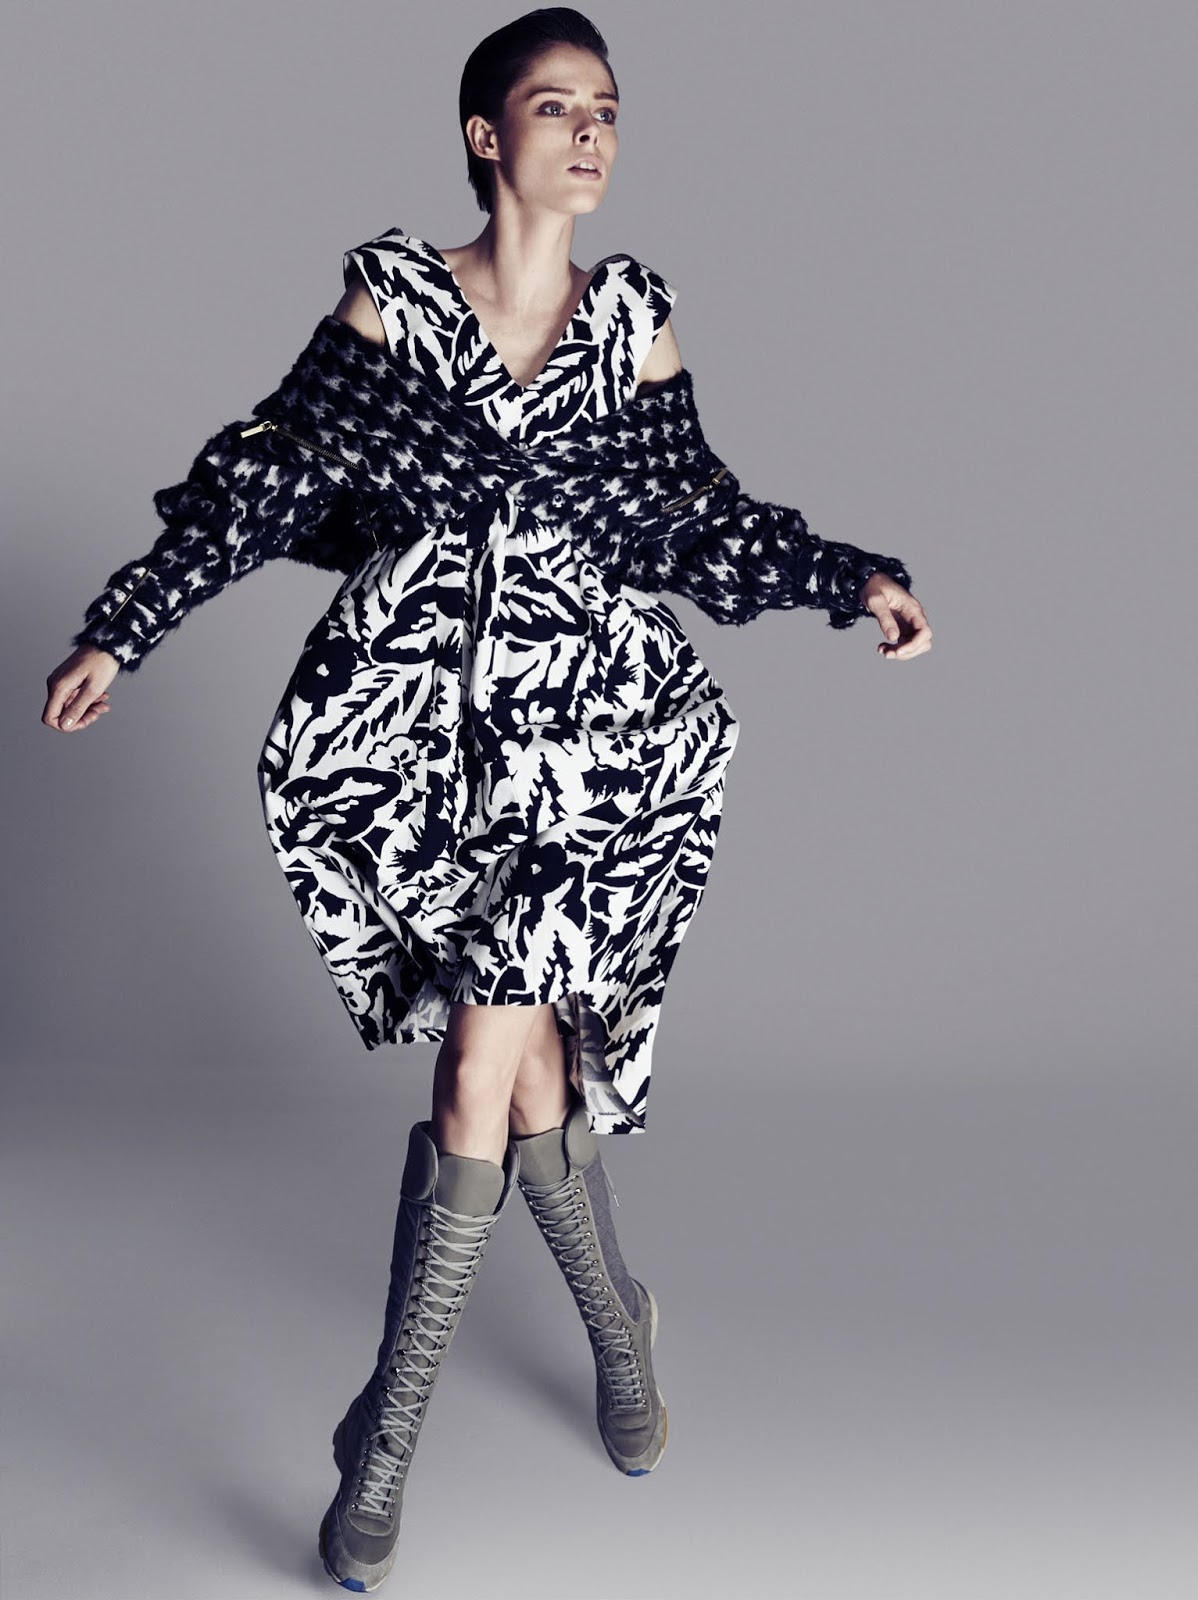 Coco-Rocha-by-Darren-Mcdonald-for-Sunday-Style-23rd-November-2014-4.jpg